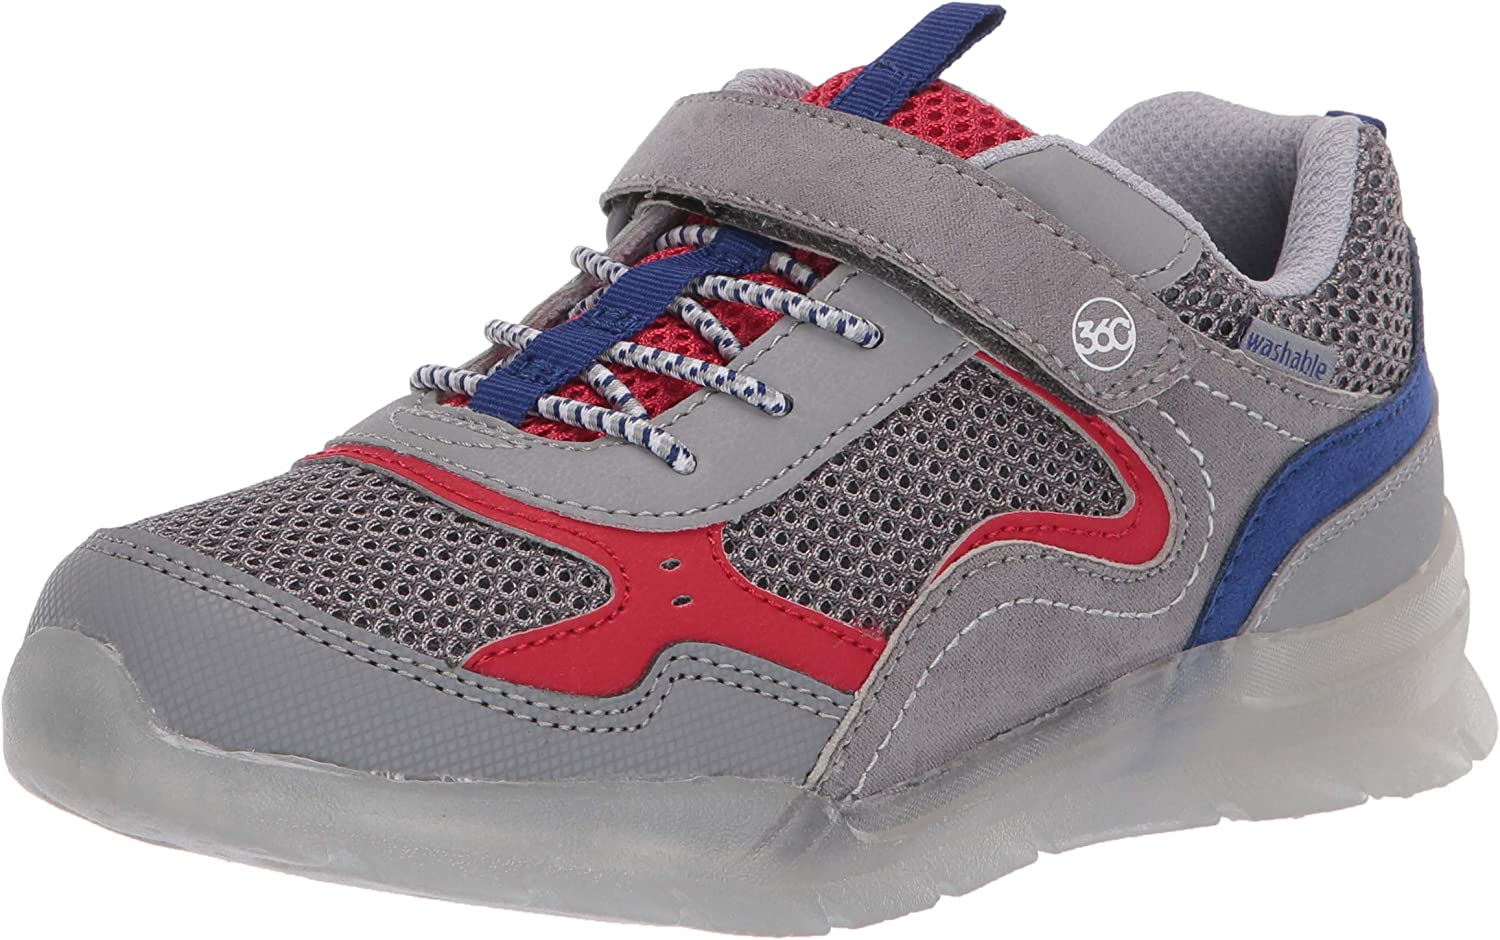 Stride Rite 360 Boy's Marcel Anti-Microbial Dual Width Insole Lighted Athletic Shoe, Grey, 7.5 M US Big Kid